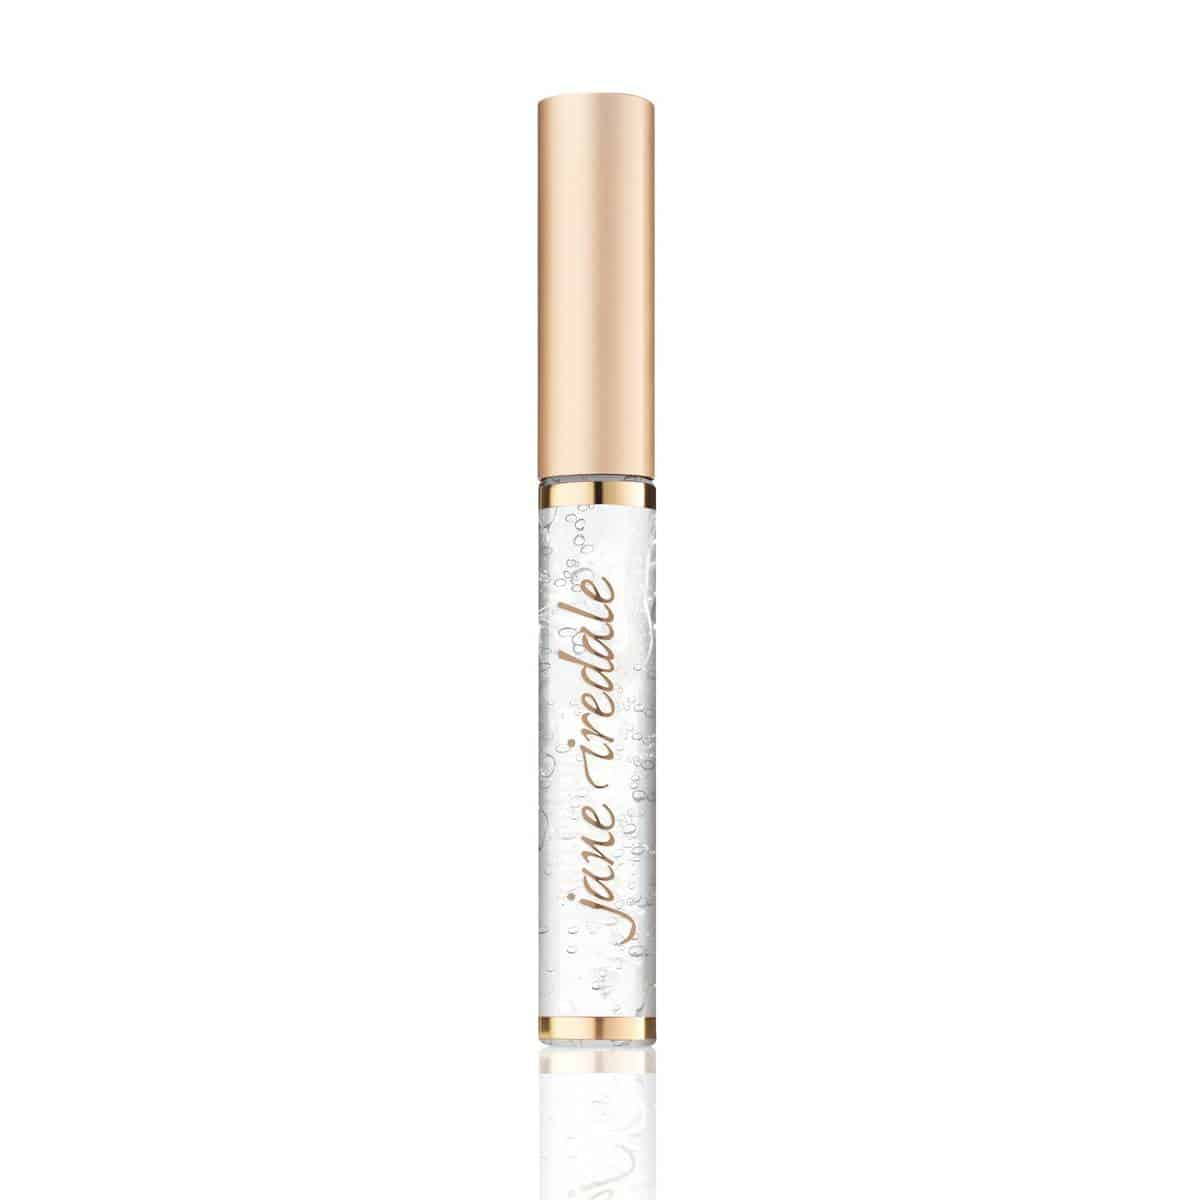 Clear PureBrow Brow Gel